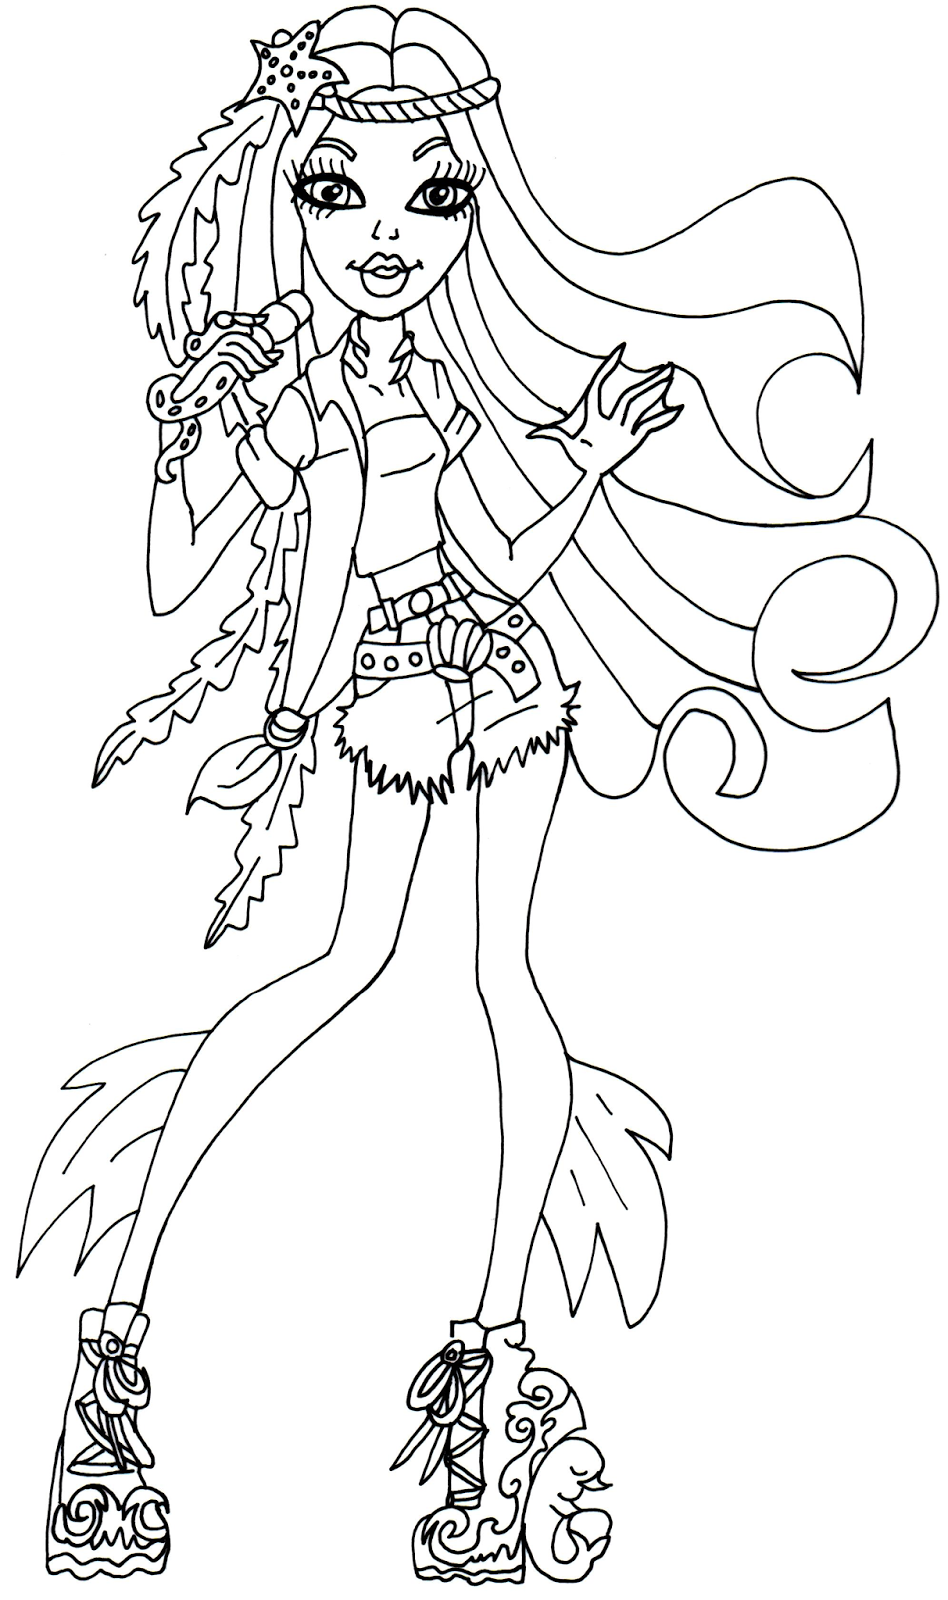 Free Printable Monster High Coloring Pages: Madison Fear